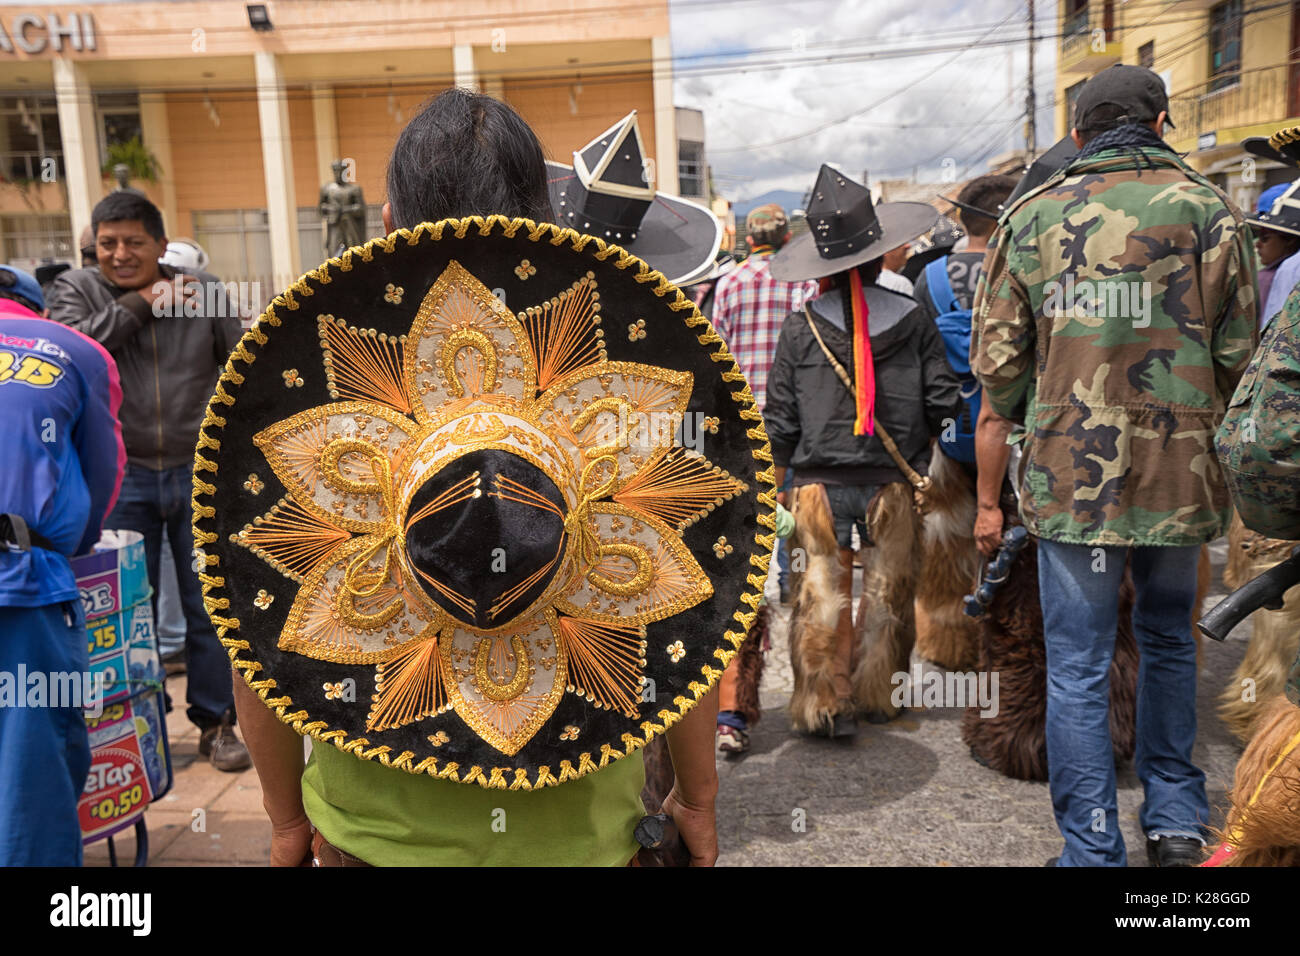 June 25, 2017 Cotacachi, Ecuador: sombreros worn during Inti Raymi as a sign of protest against the colonization - Stock Image